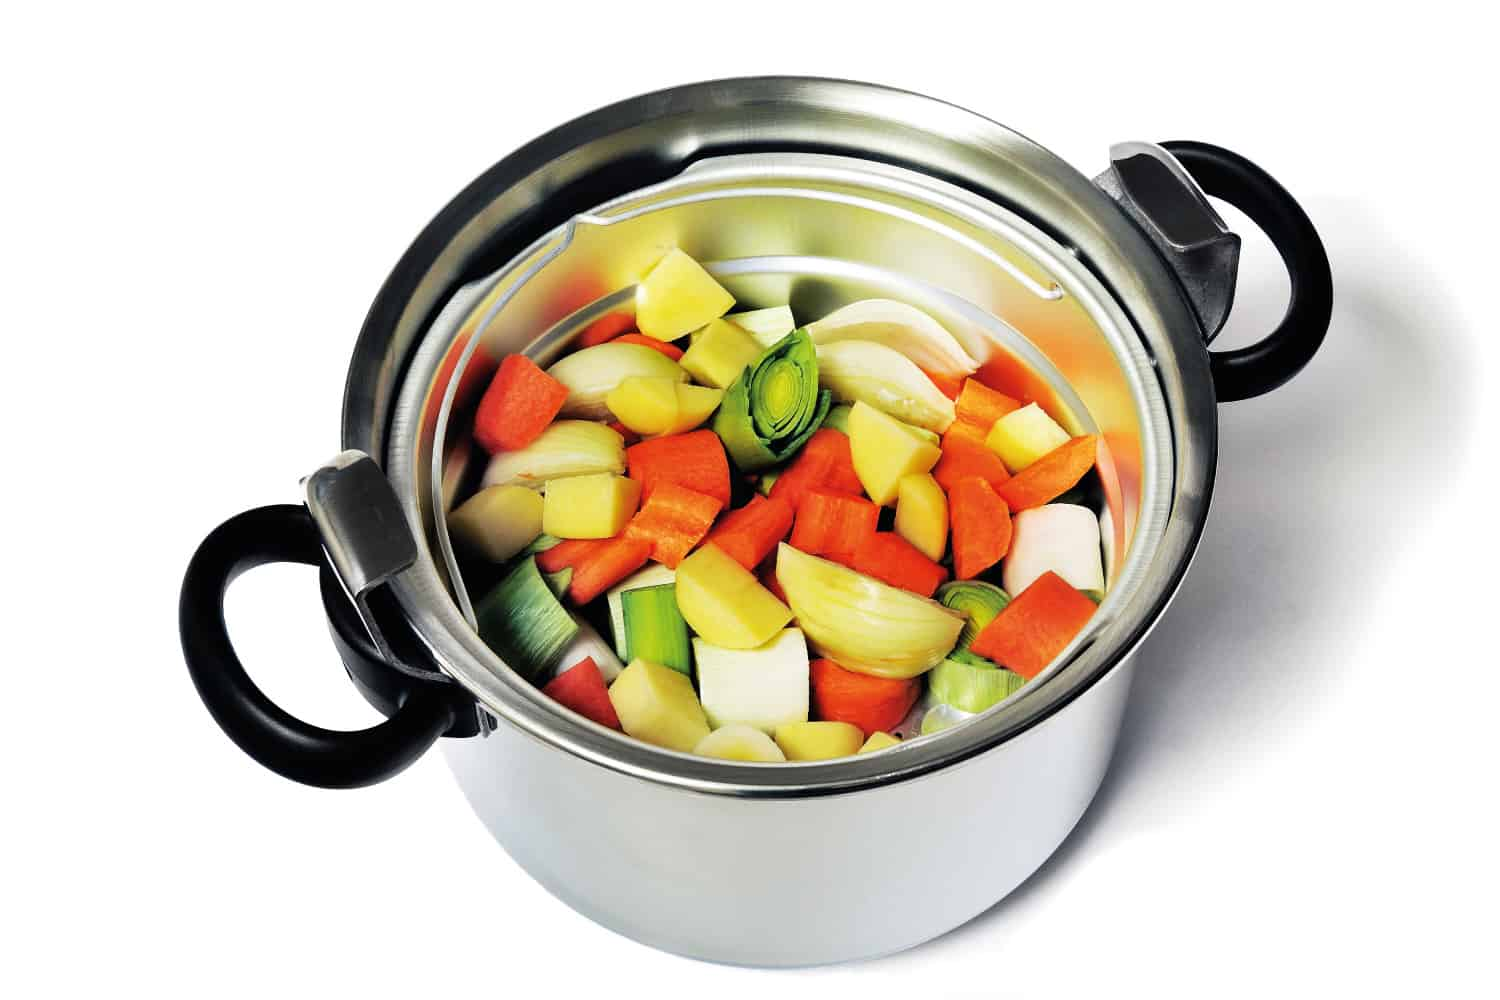 Stainless steel pressure cooker with vegetables